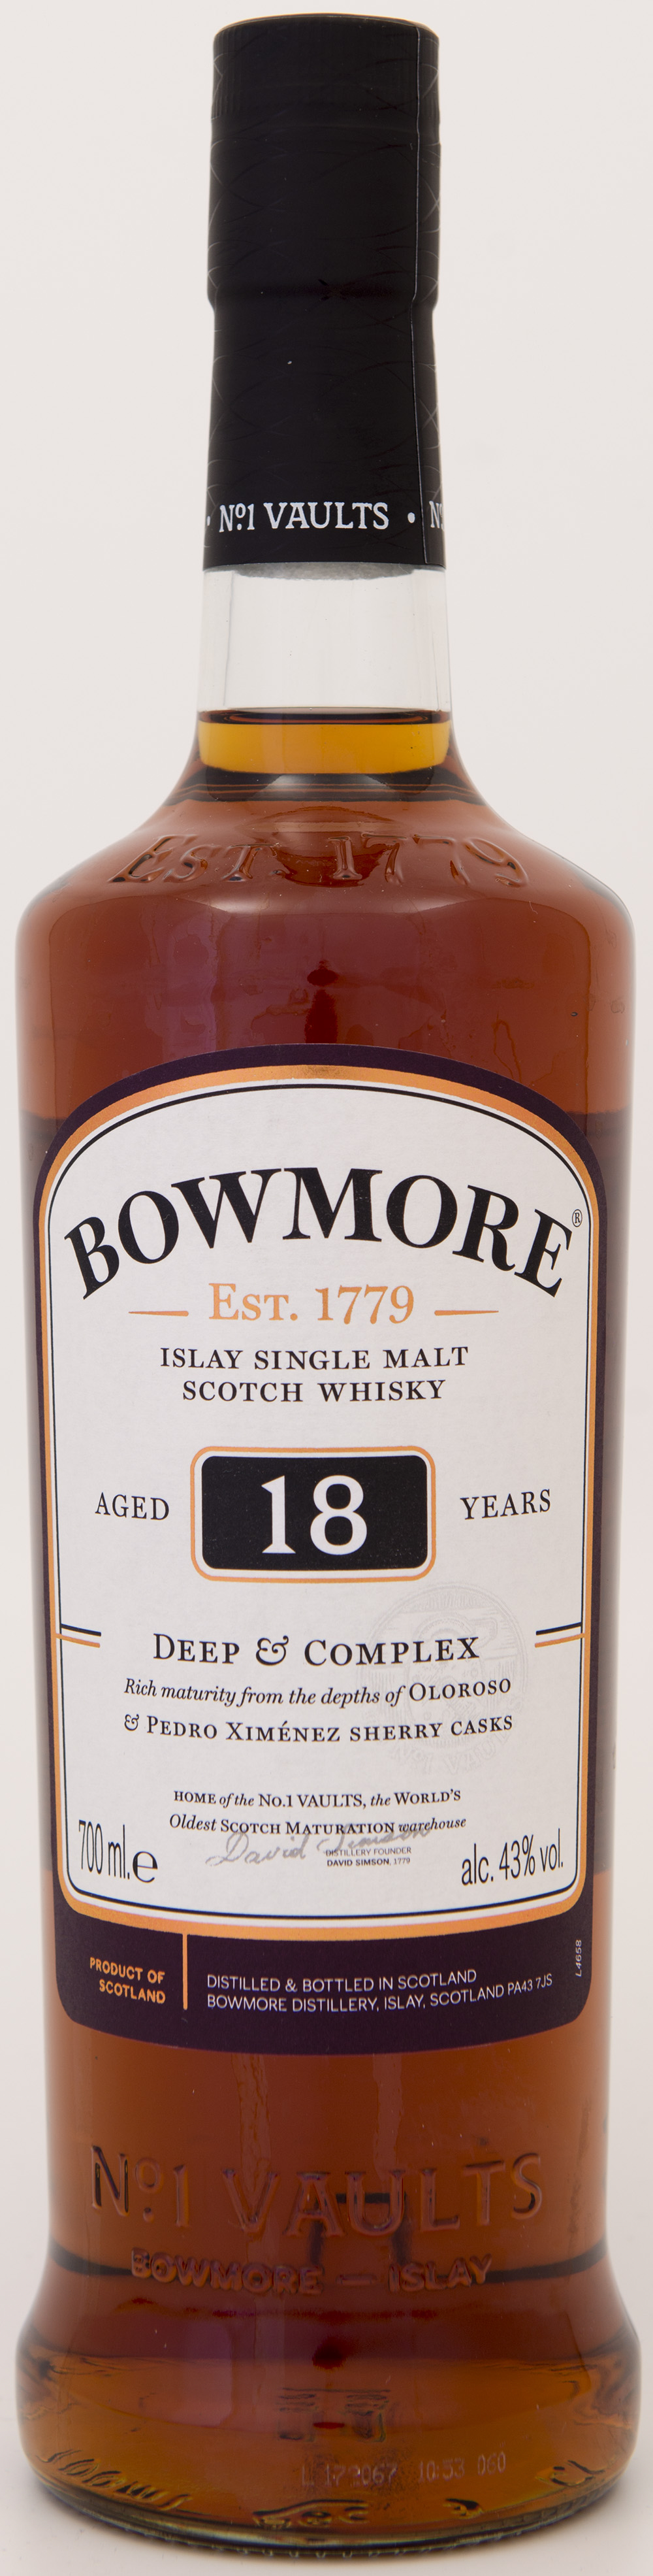 Billede: DSC_3304 - Bowmore 18 Deep and Complex.jpg